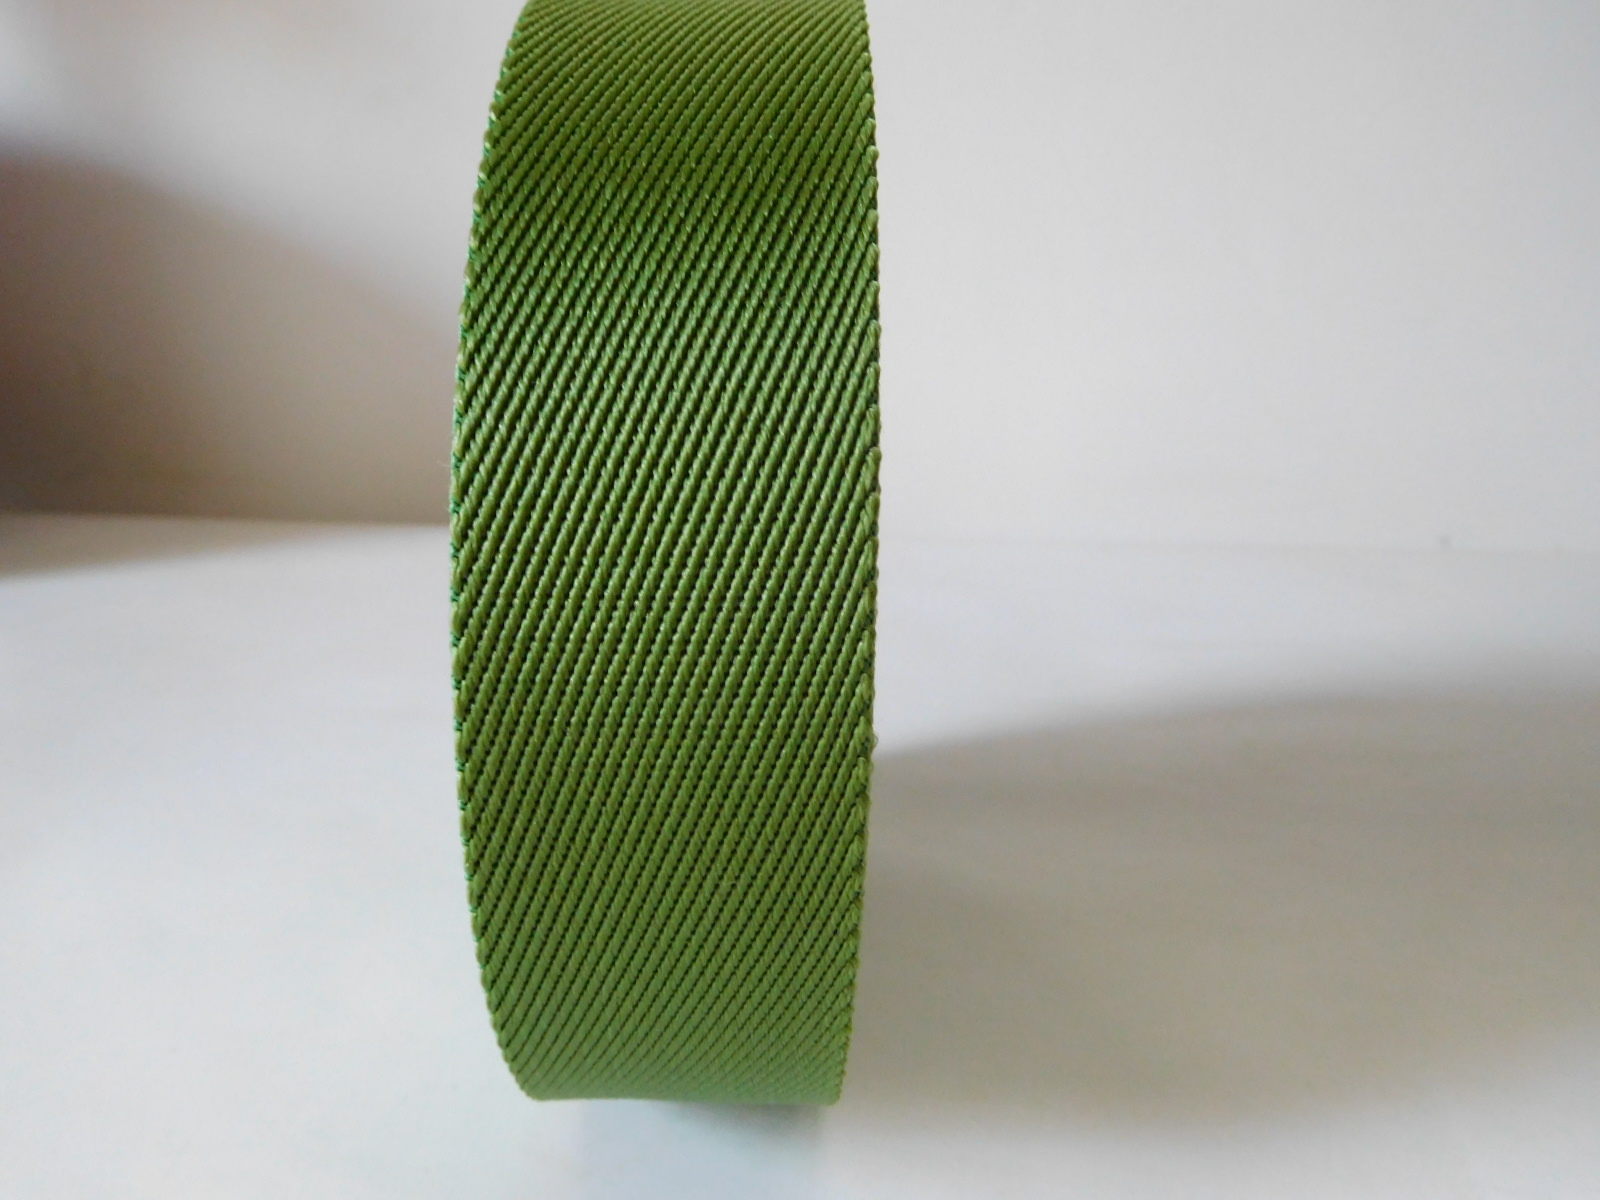 40mm twill nylon webbing